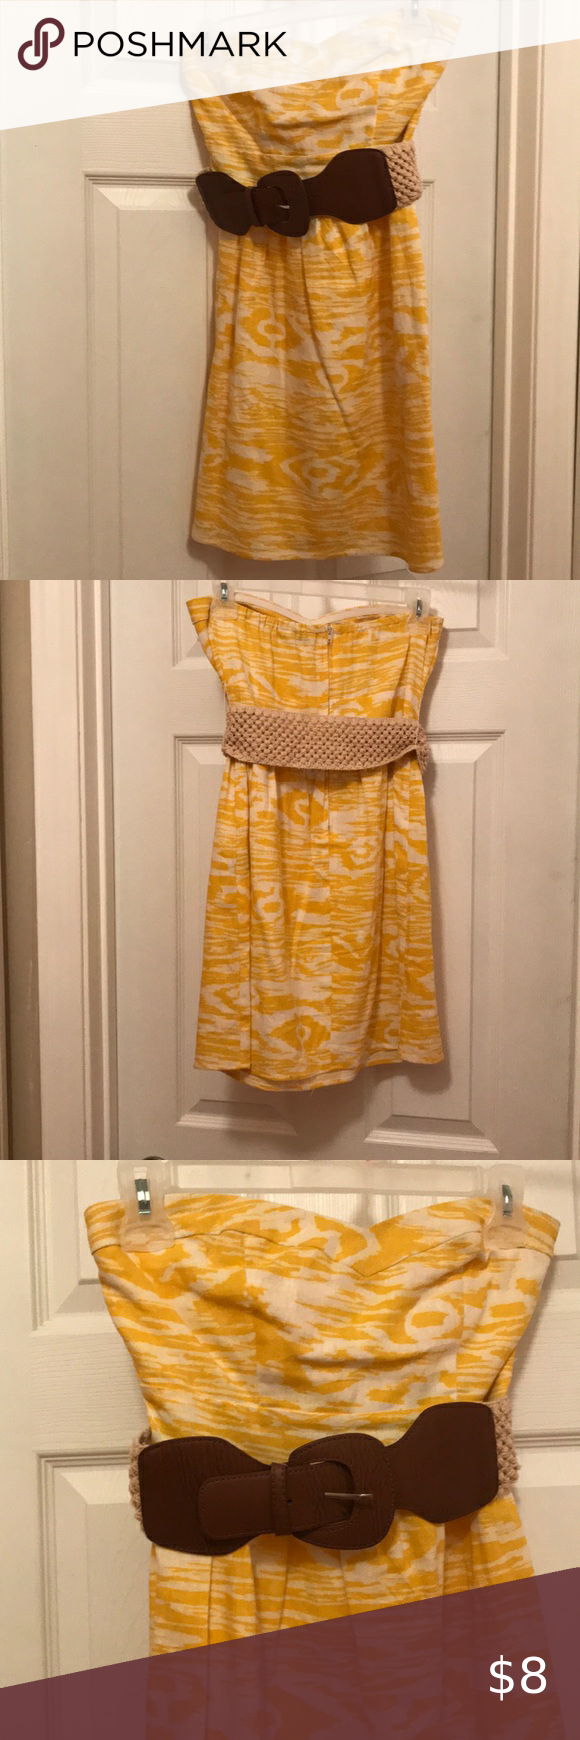 Yellow White Dress With Brown Belt Yellow And White Dress Brown Belt Clothes Design [ 1740 x 580 Pixel ]